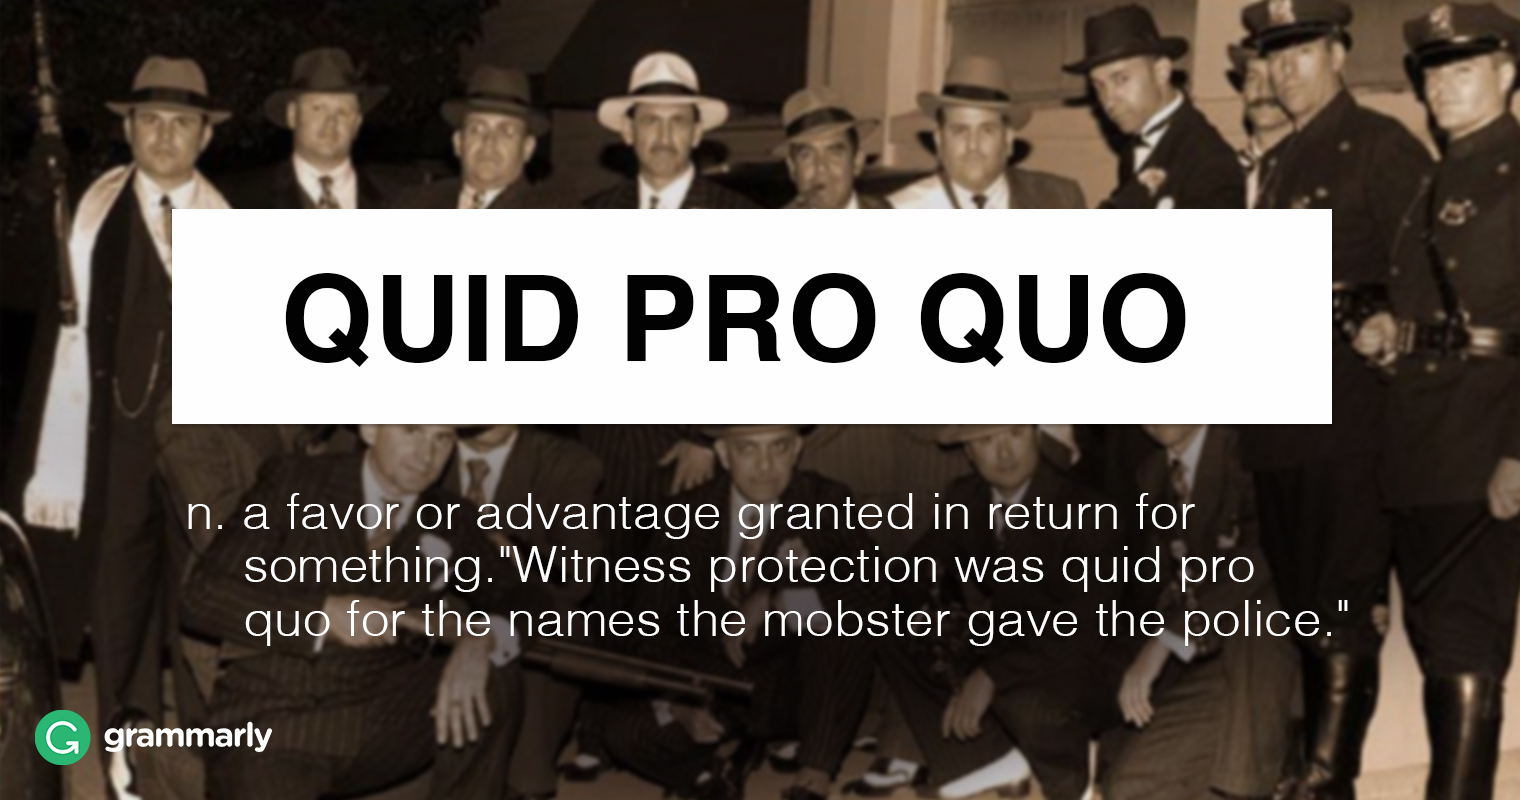 "quid pro quo n. a favour or advantage granted in return for something. ""Witness protection was quid pro quo for the names the mobster gave the police."""